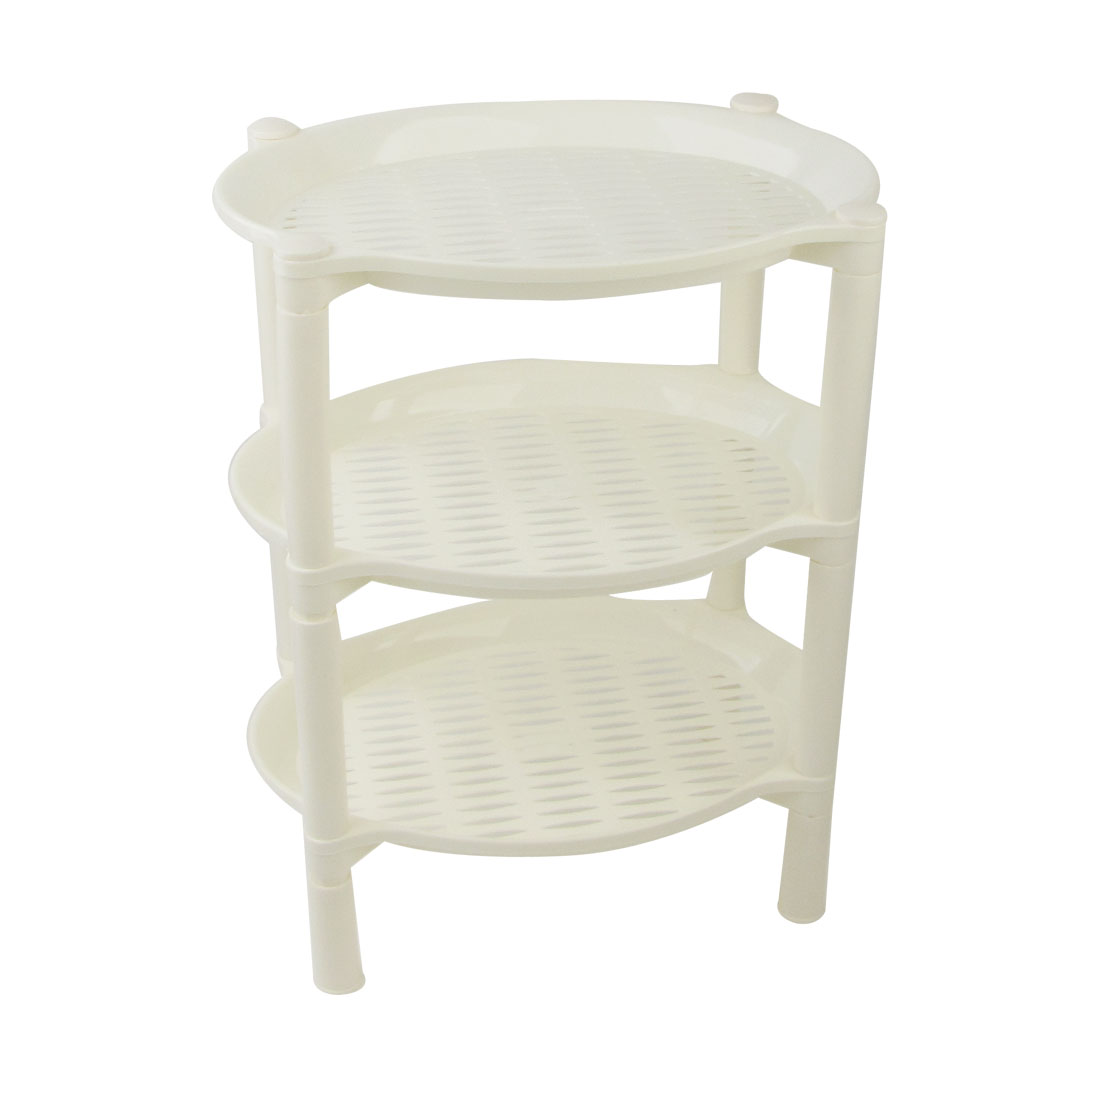 Household Ellipse Detachable Three Layer Off White Plastic Shelves Storage Rack